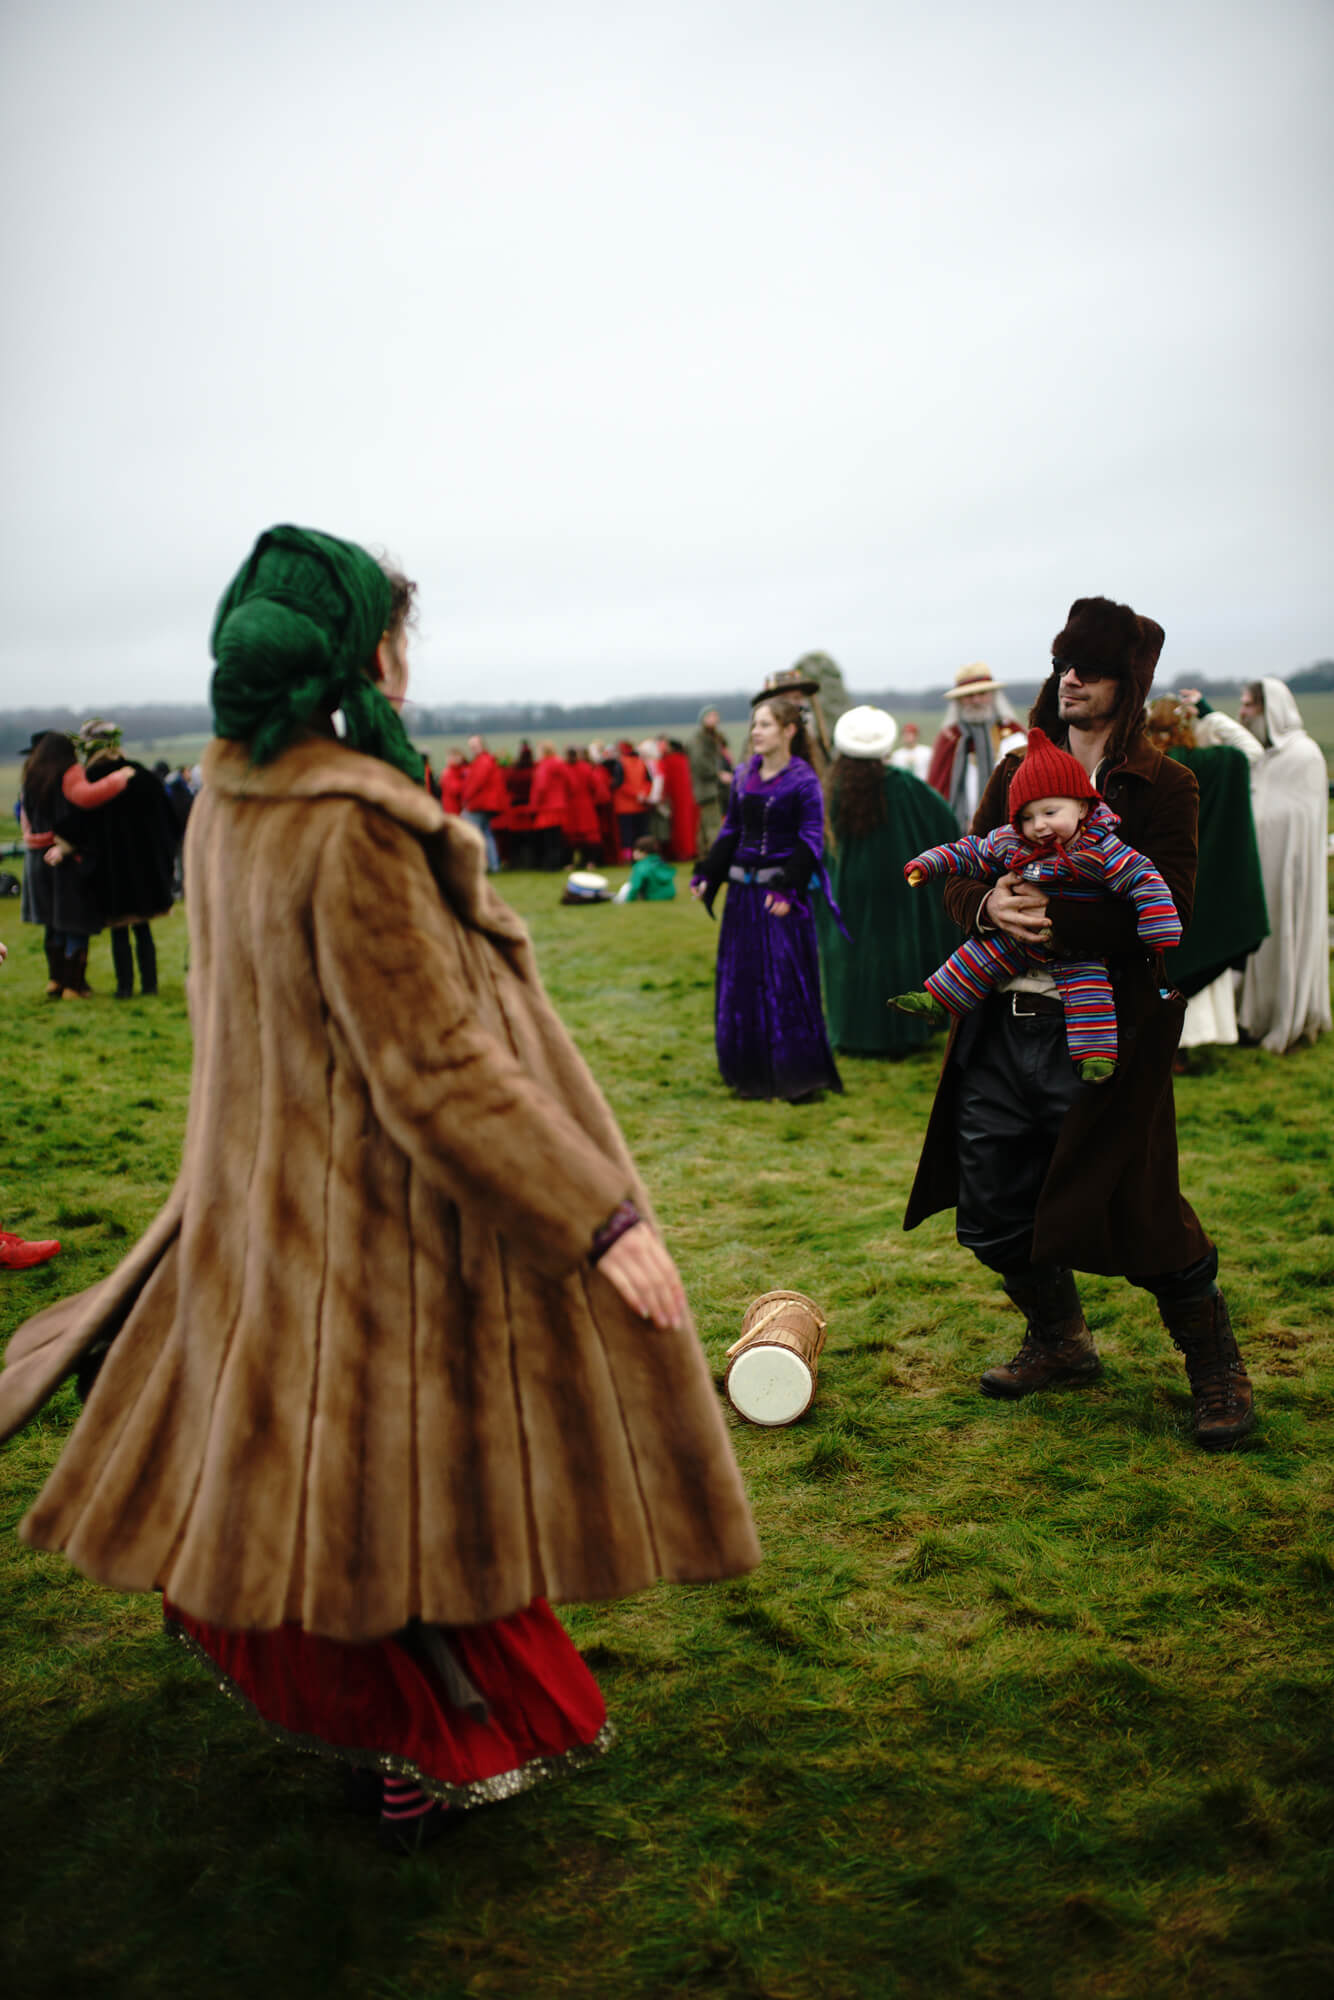 ana paganini stonehenge Summer and Winter Solstices the south west collective of photography family playing at stonehenge